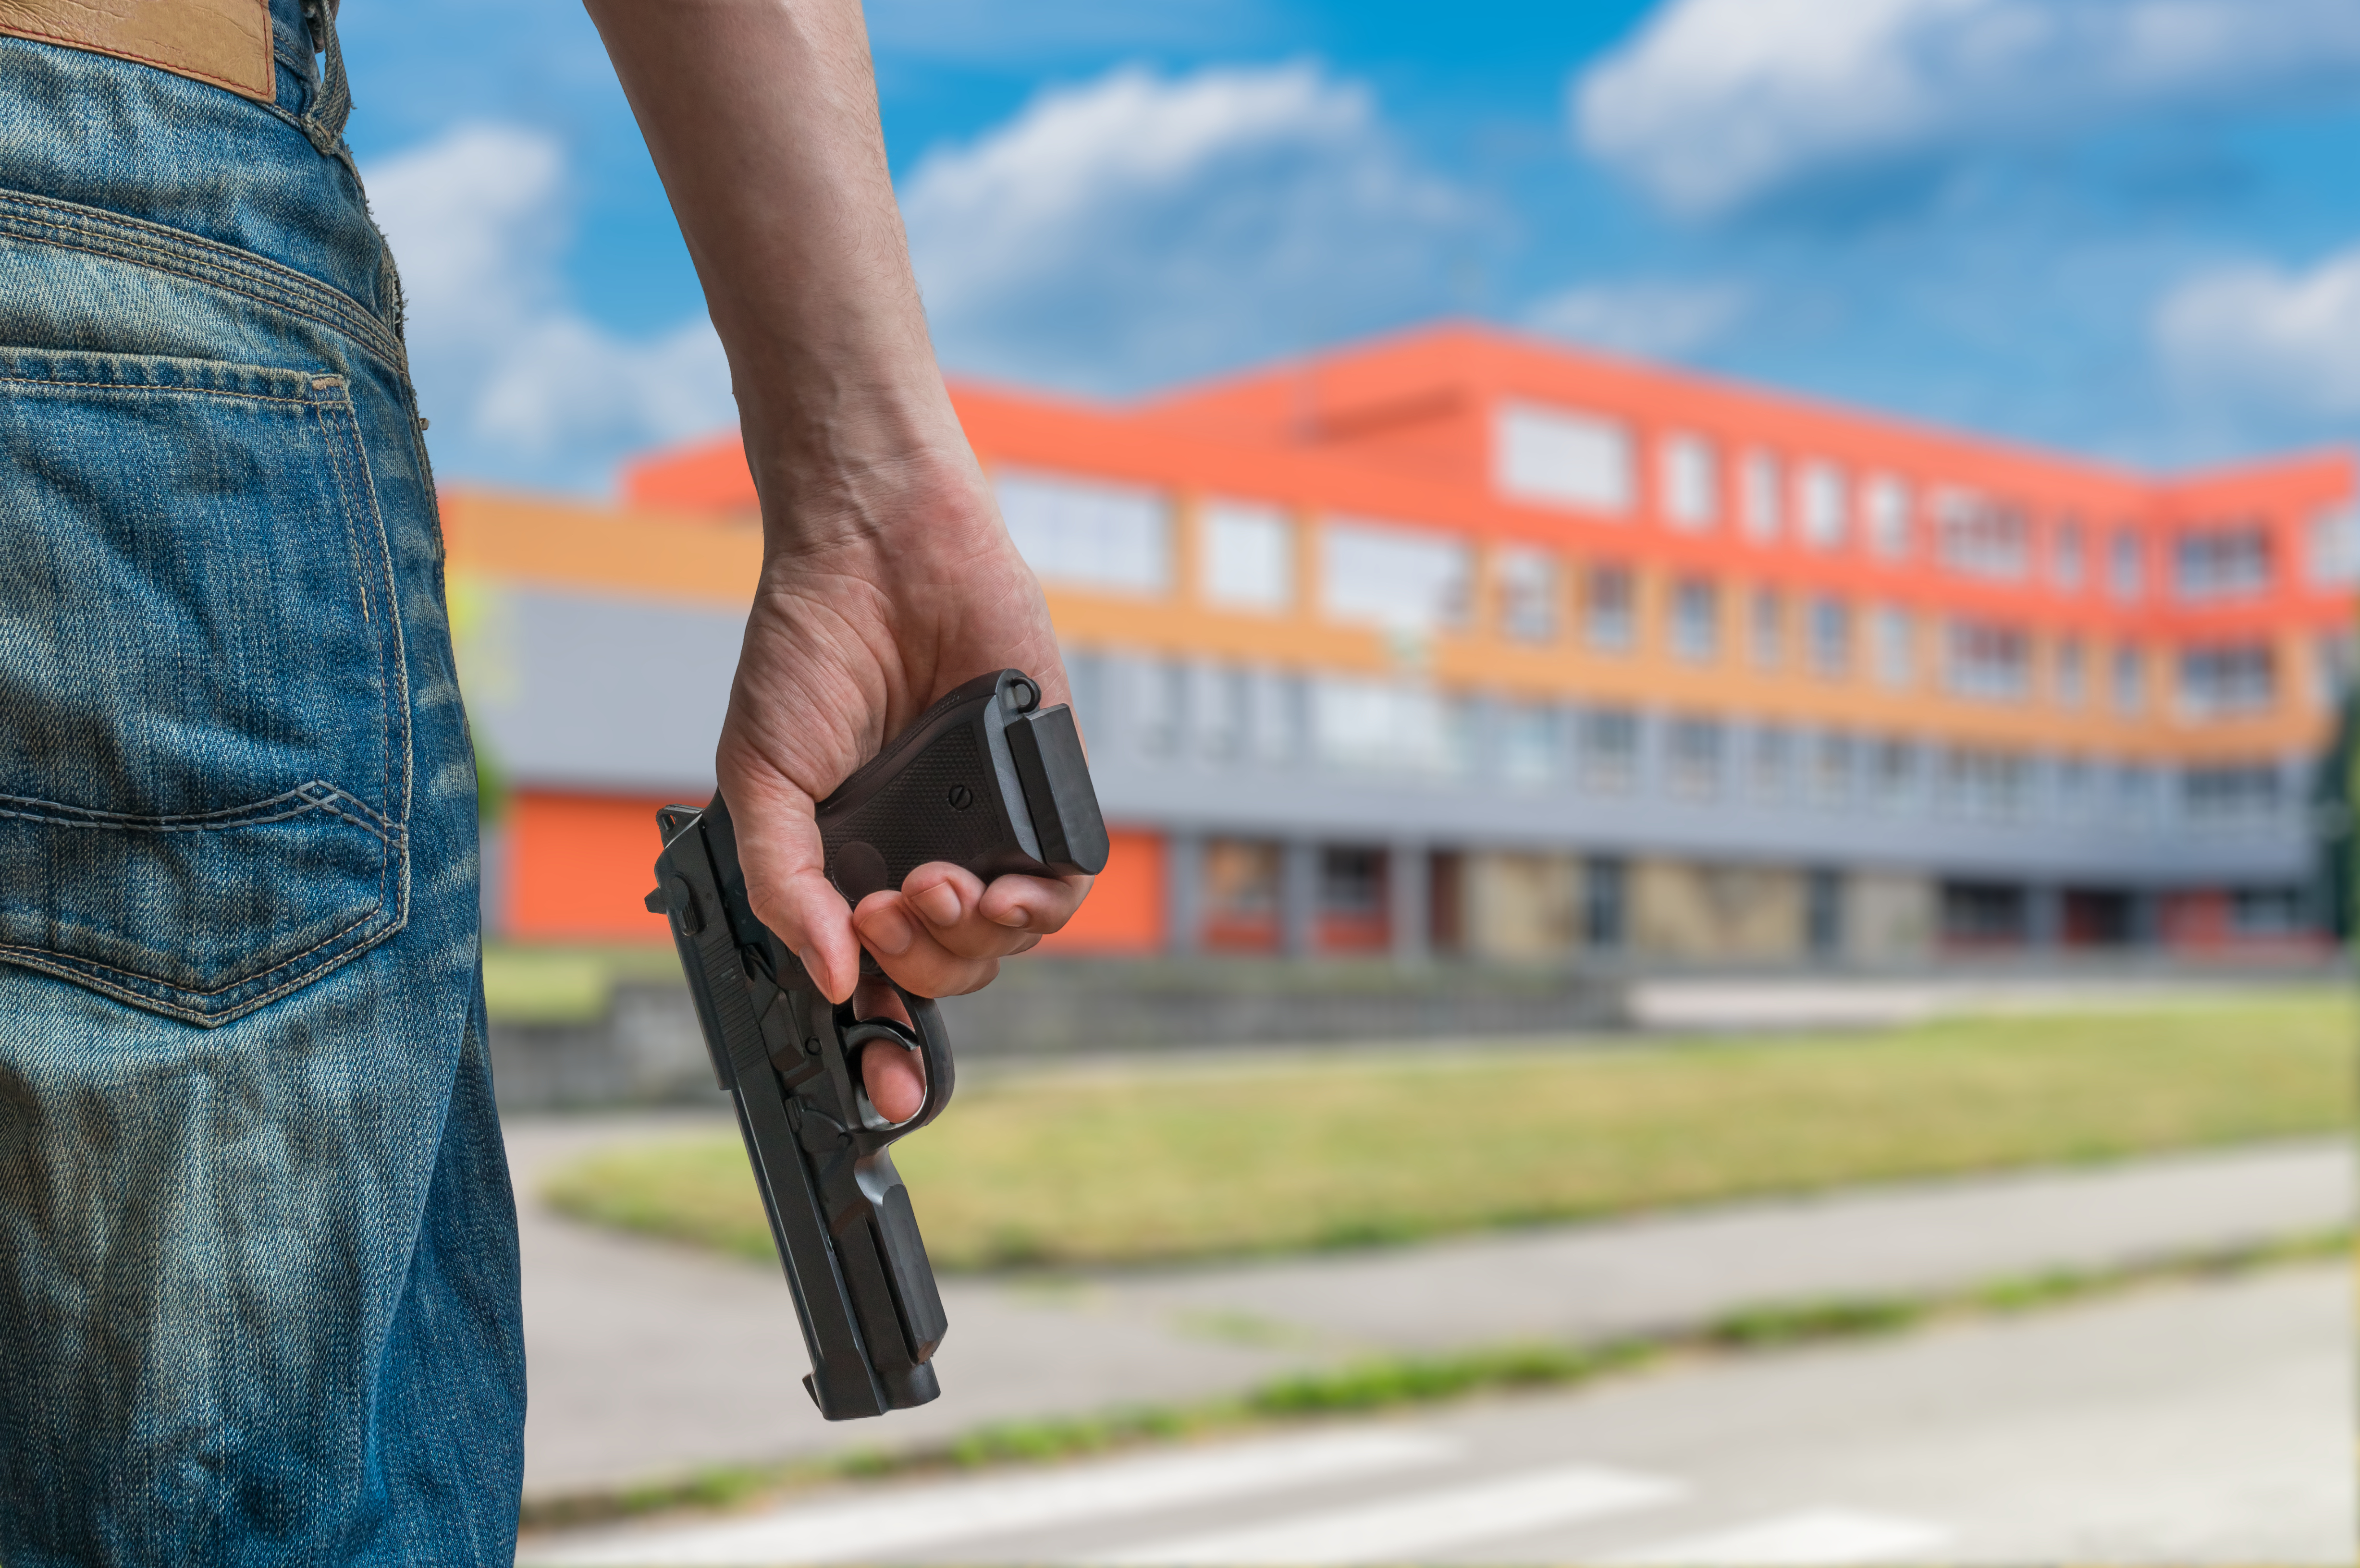 school shooting One student has been injured and a teenager is in police custody after a shooting at a florida high school, as students prepare to rally across the country to protest gun violence.